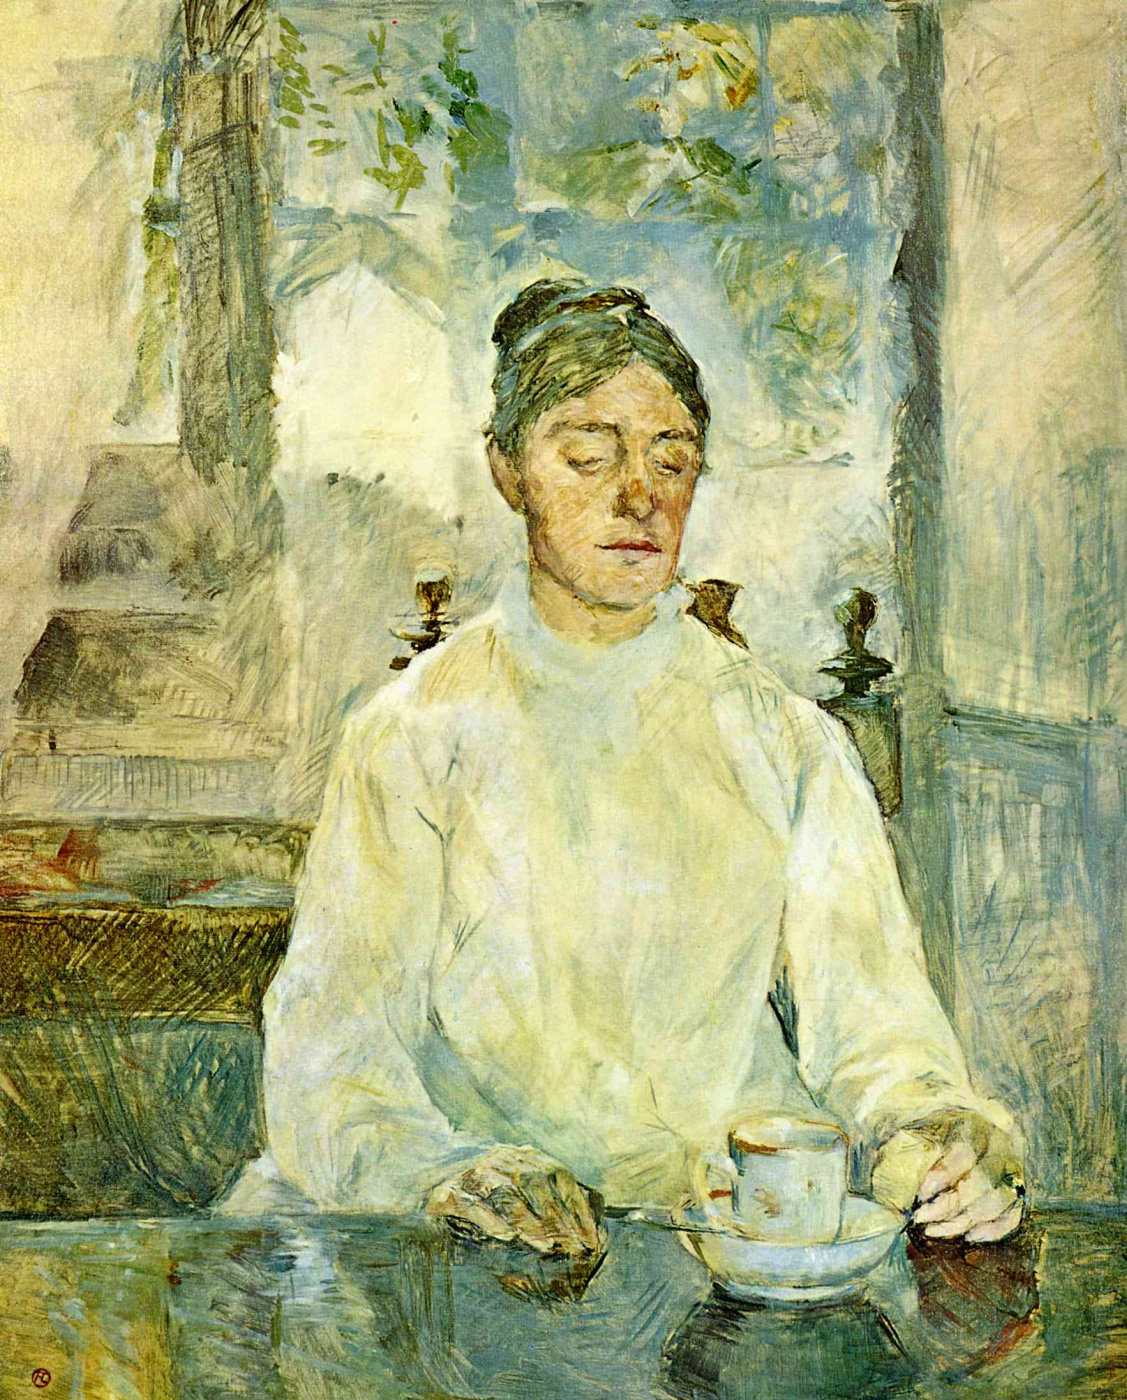 Henri de Toulouse-Lautrec. The artist's mother, the Countess Adele de Toulouse-Lautrec at Breakfast